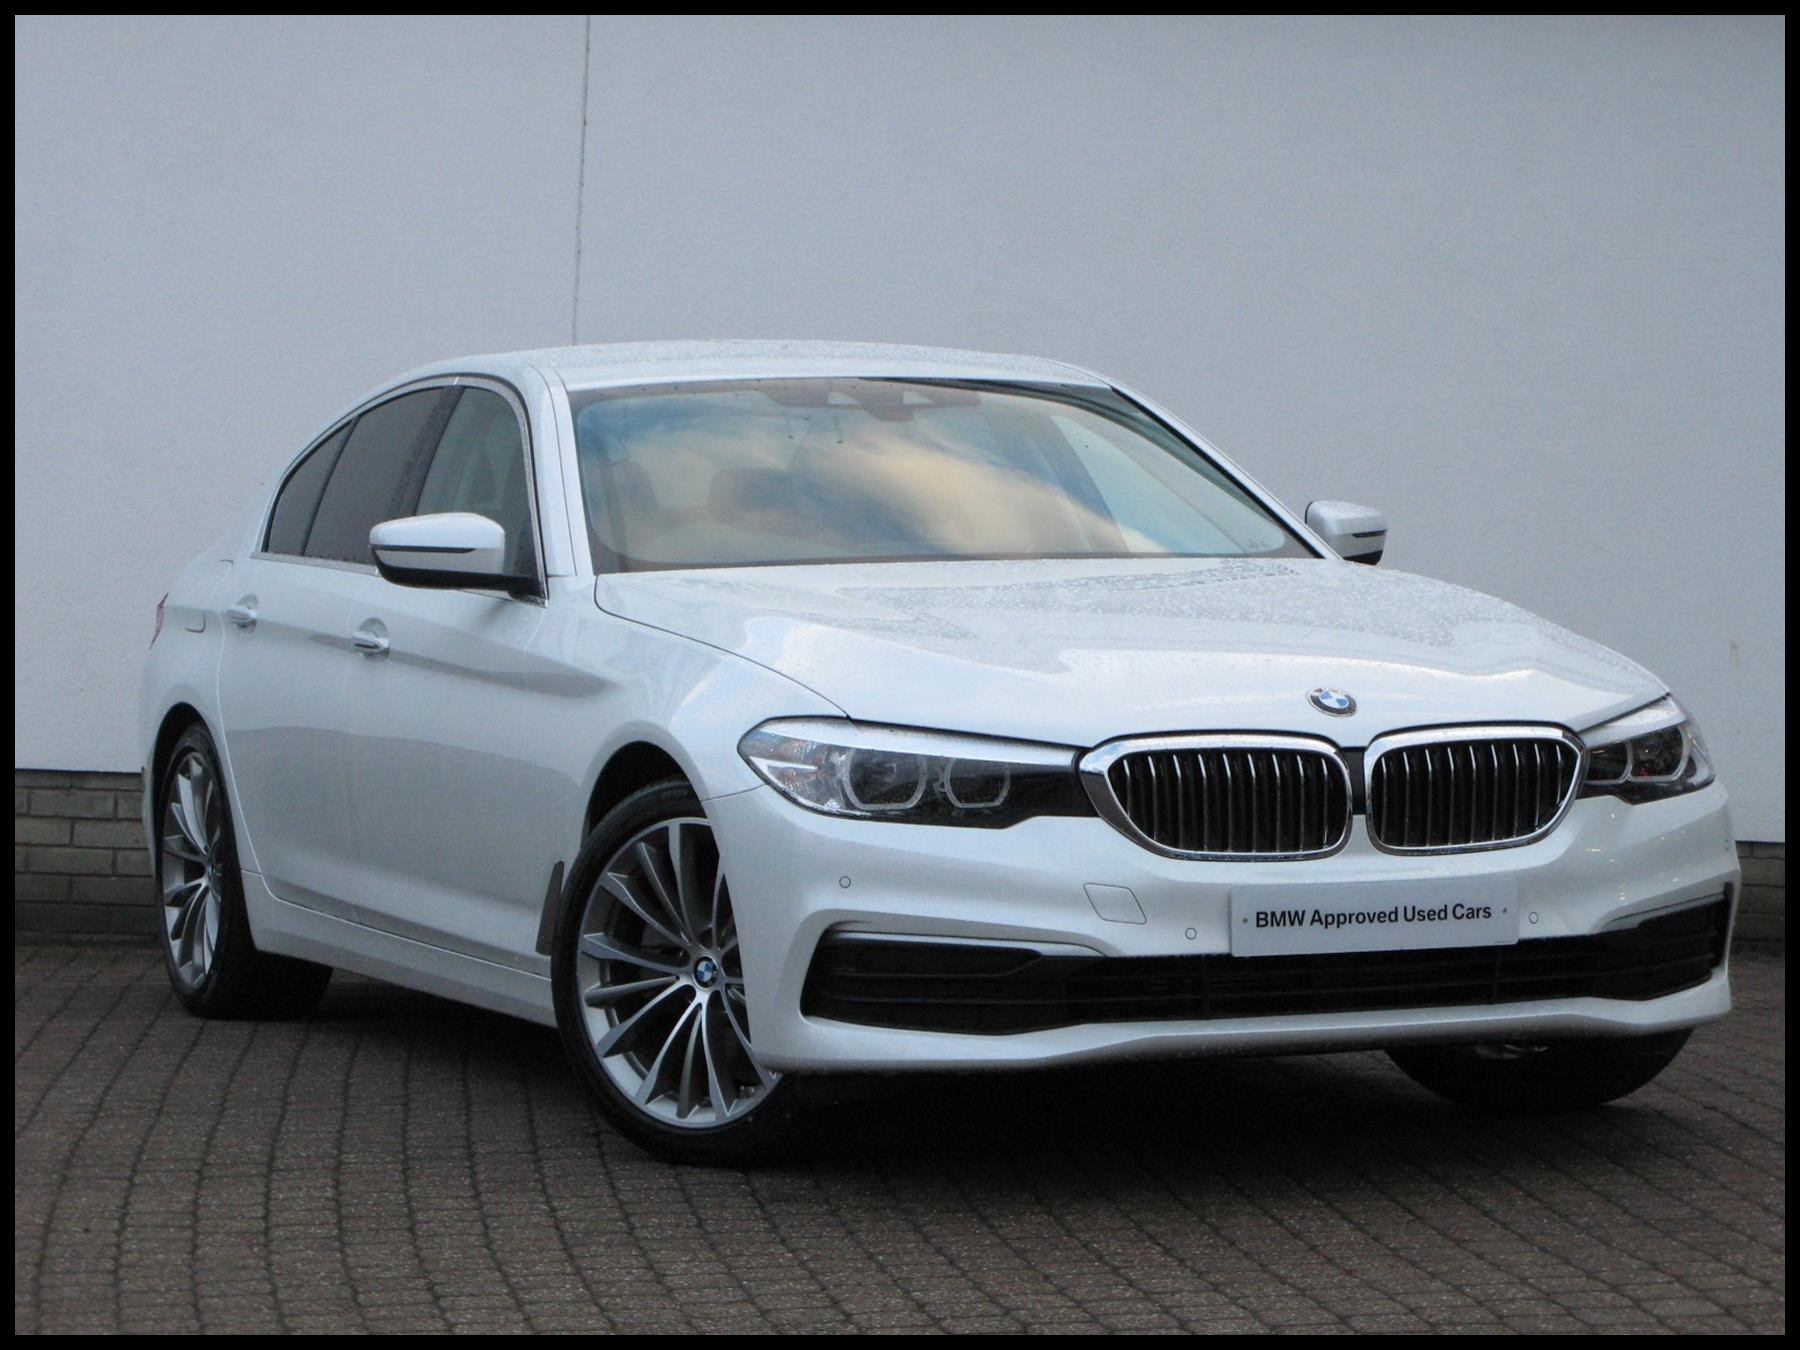 Used Bmw Transmission Best Bmw M7 for Sale Used 2017 Bmw 5 Series G30 520d